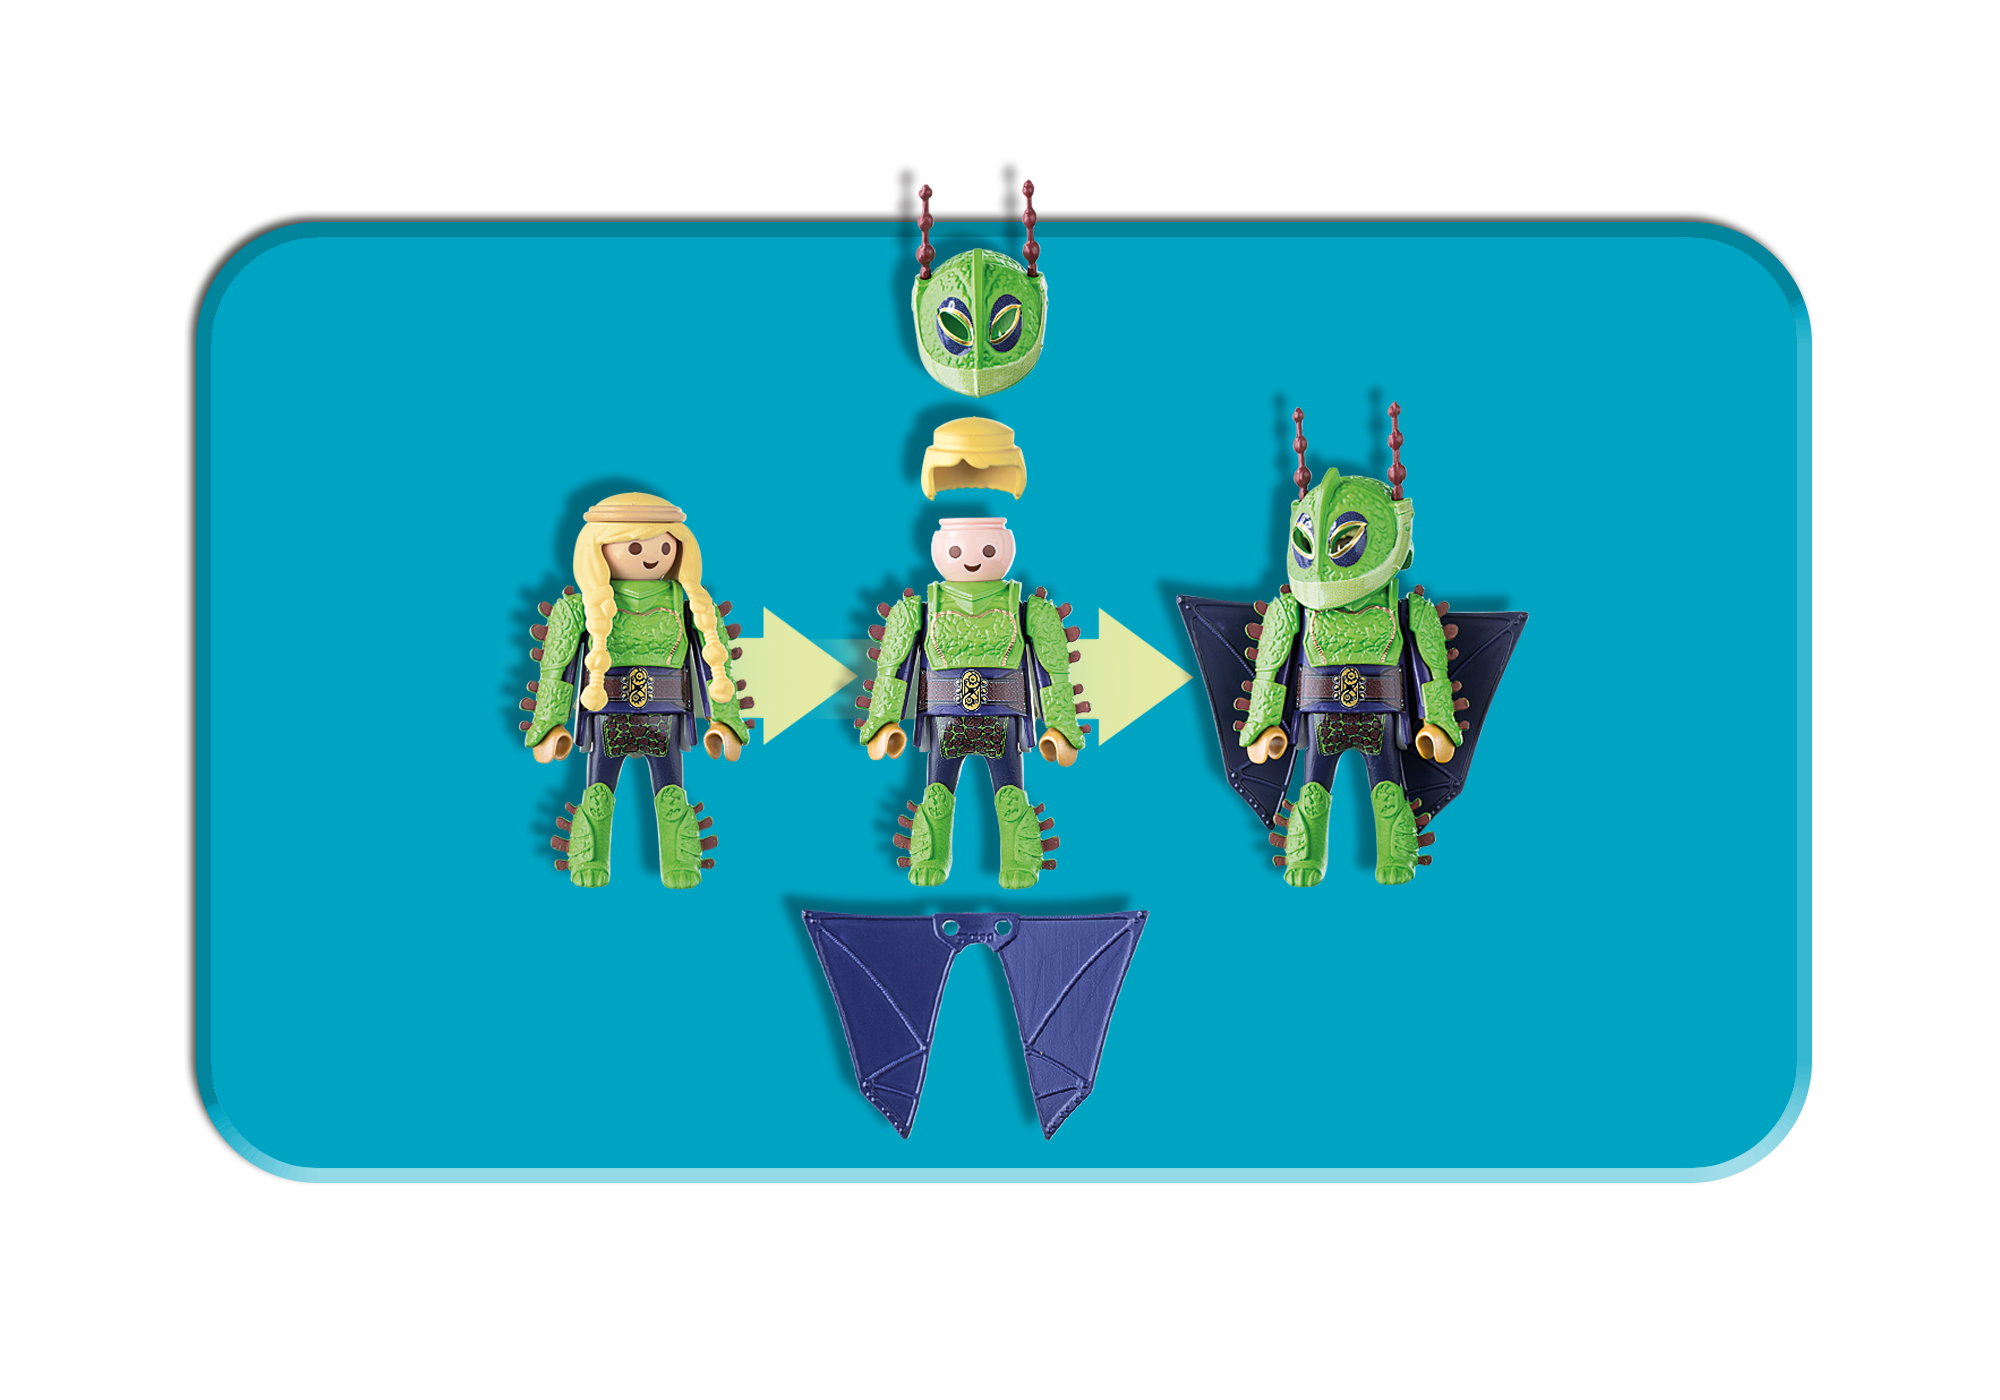 http://media.playmobil.com/i/playmobil/70042_product_extra1/Ruffnut and Tuffnut with Flight Suit